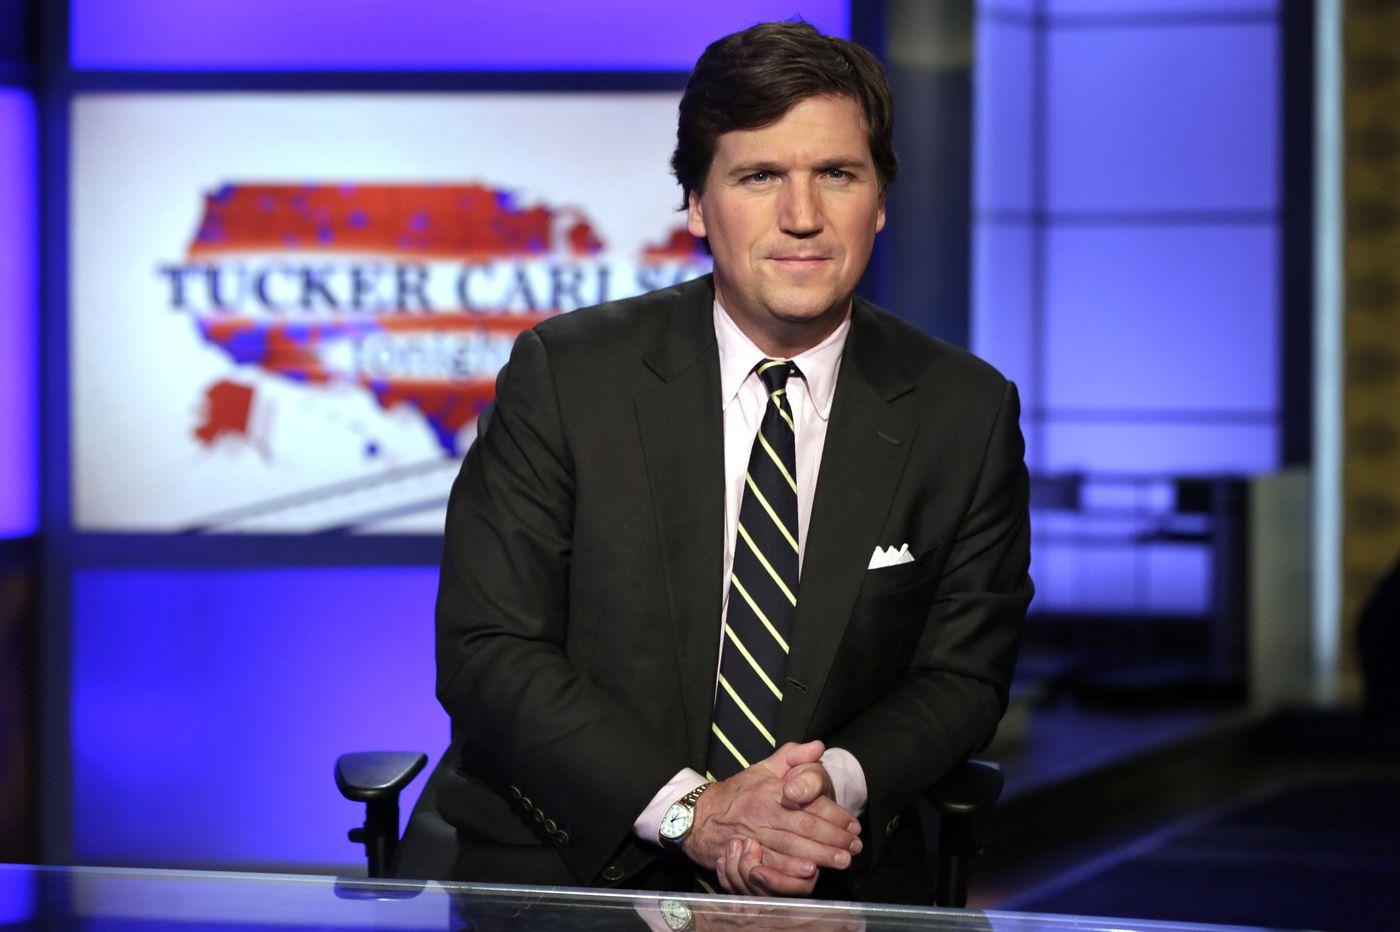 Tucker Carlson shouldn't apologize, even in this age of overhyped, PC contrition | Christine Flowers